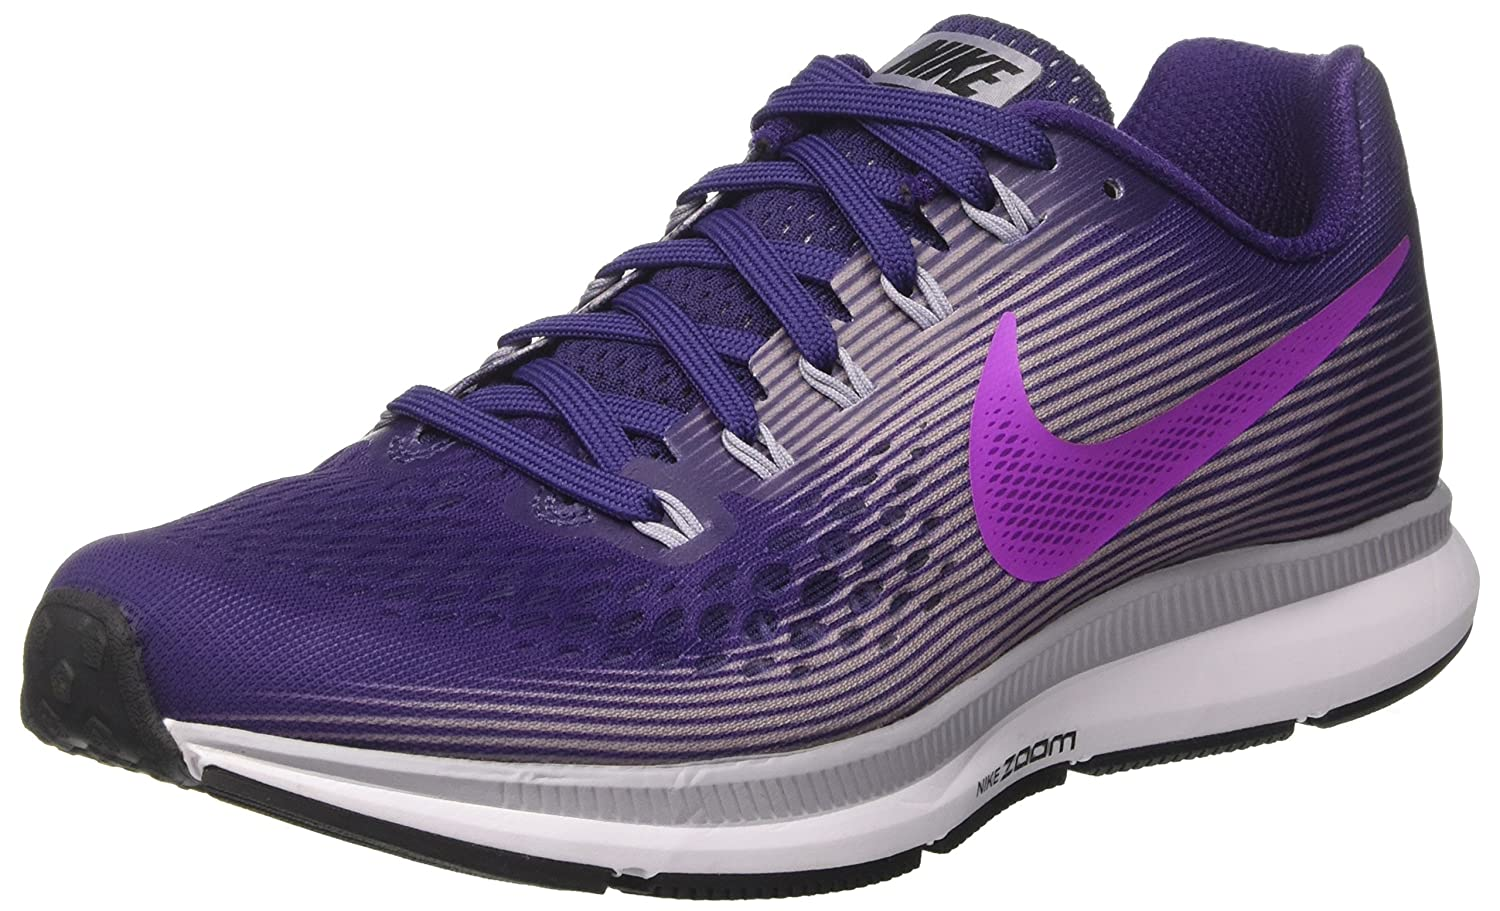 Nike Women s Air Zoom Pegasus 34 Running Shoe, Ink Hyper Violet, 8.5